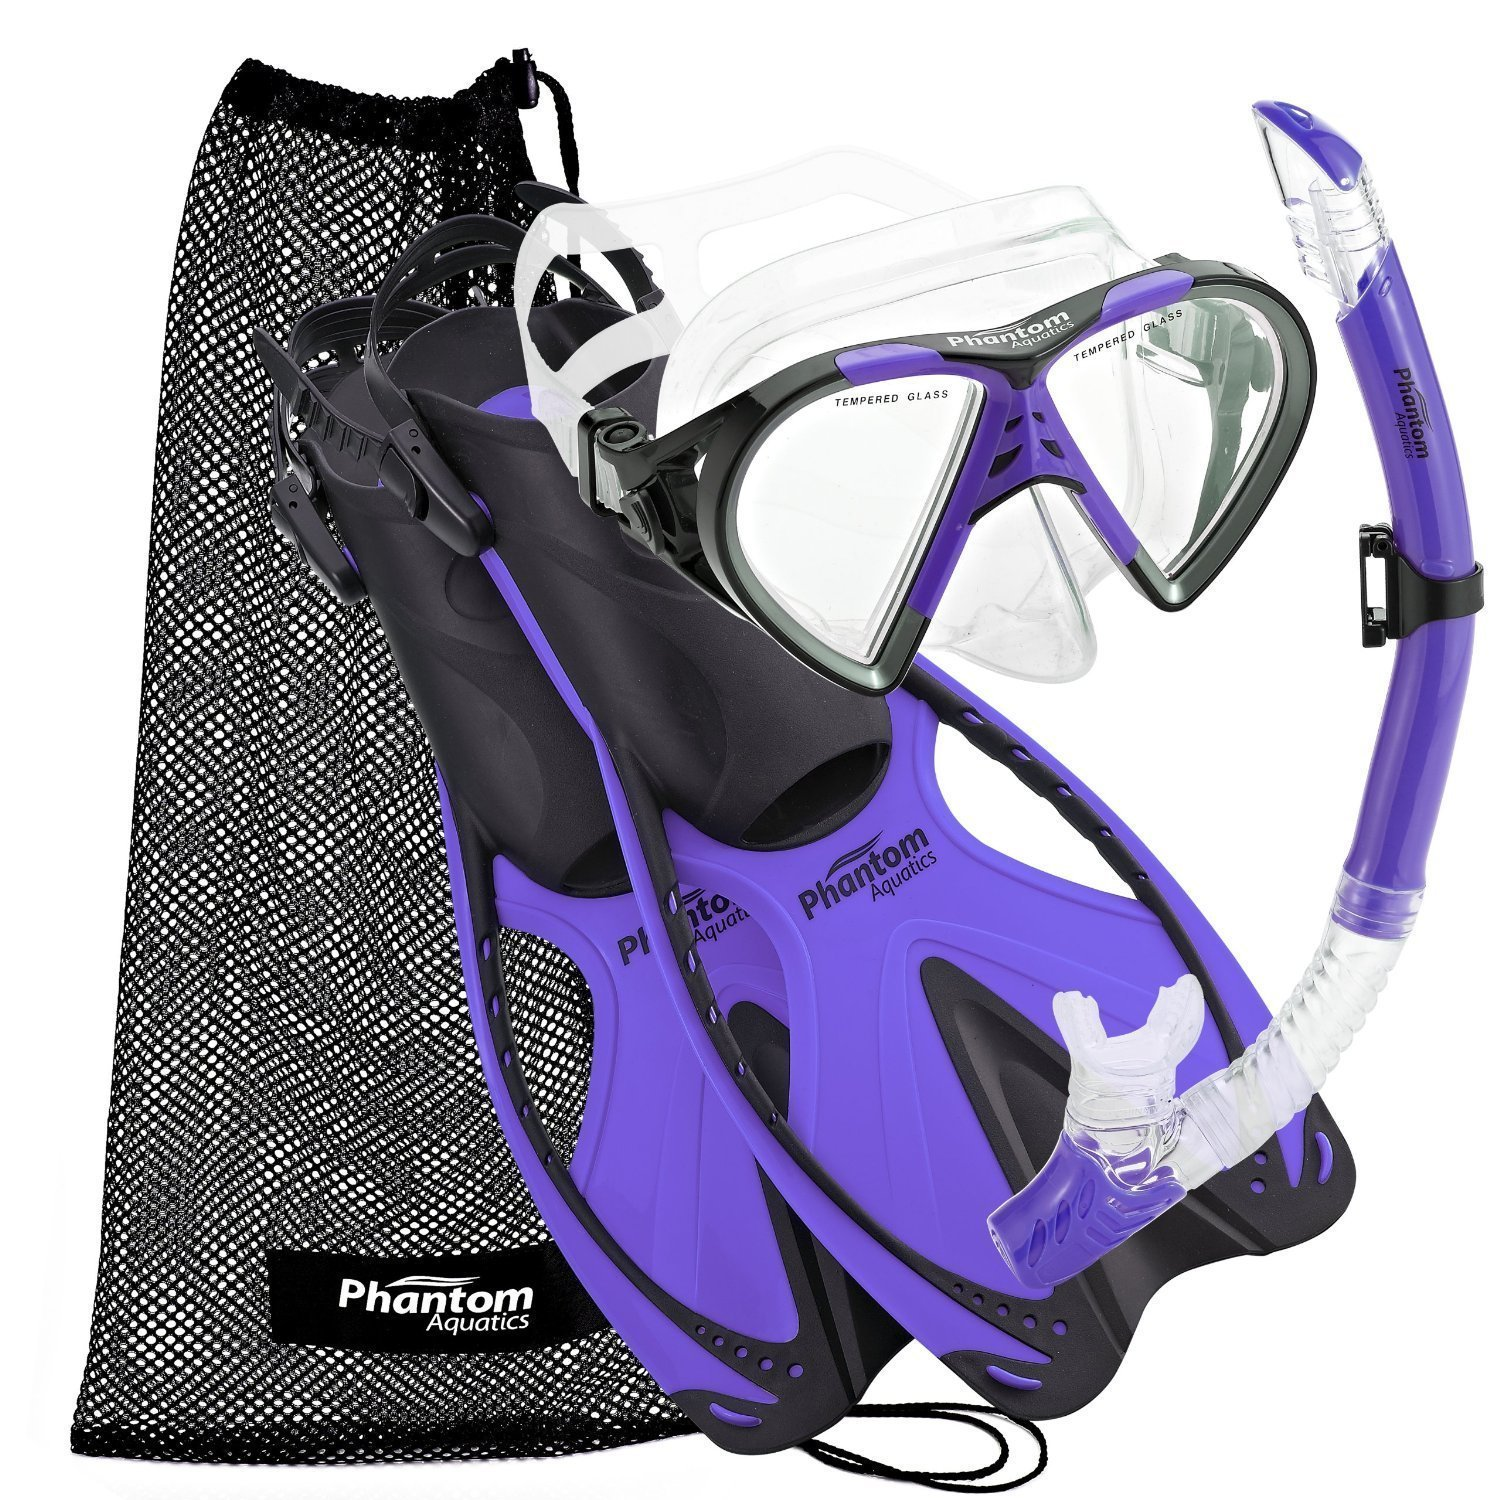 Phantom Aquatics Speed Sport Mask Fin Snorkel Set Adult, Twilight - Large/X-Large/Size 9 to 13